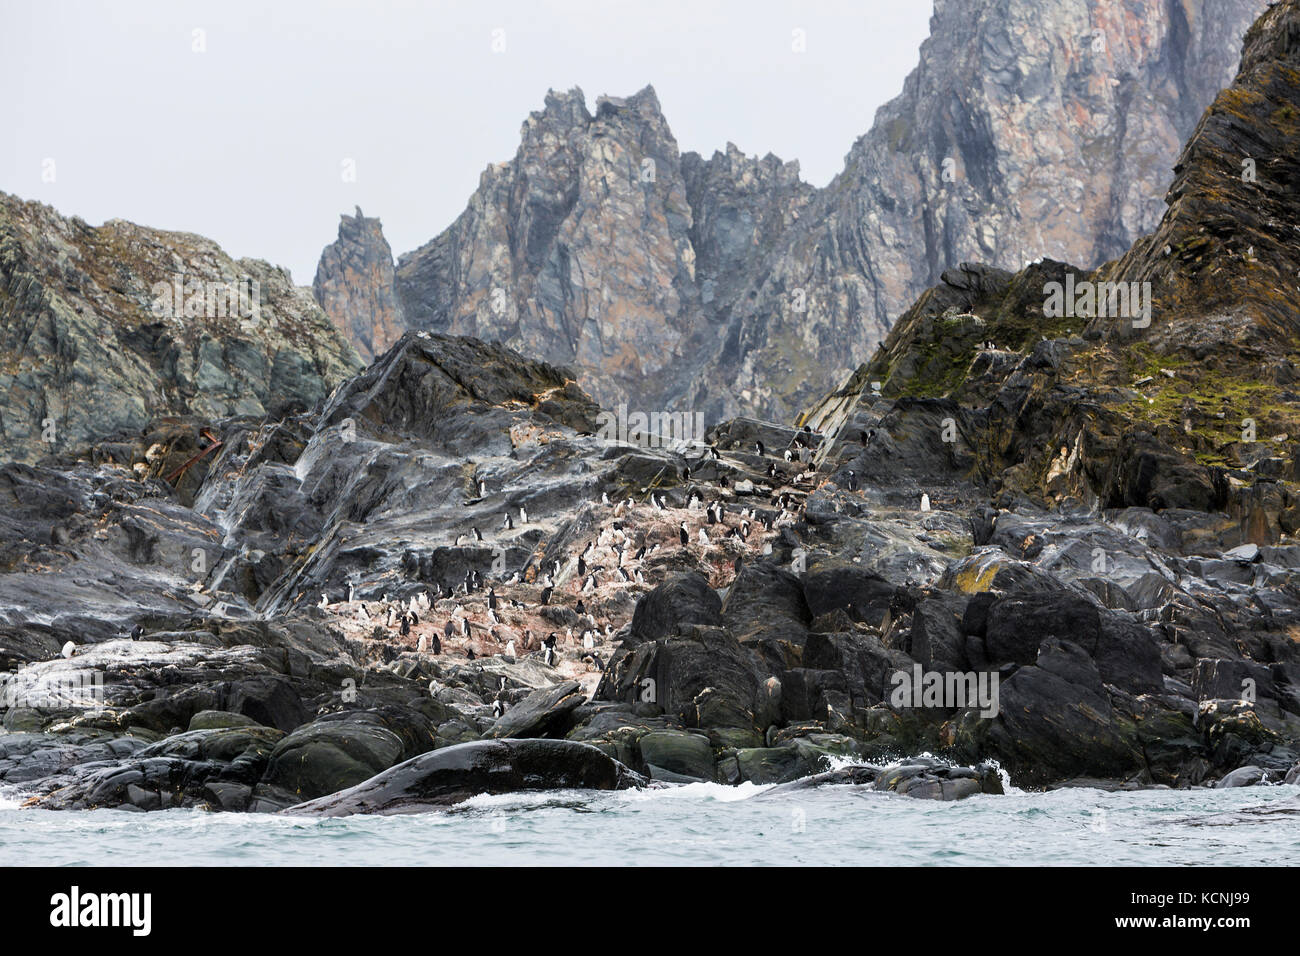 Chinstrap Penguins relax on a rocky headland on remote and inhospitable Elephant Island, South Shetland Islands - Stock Image